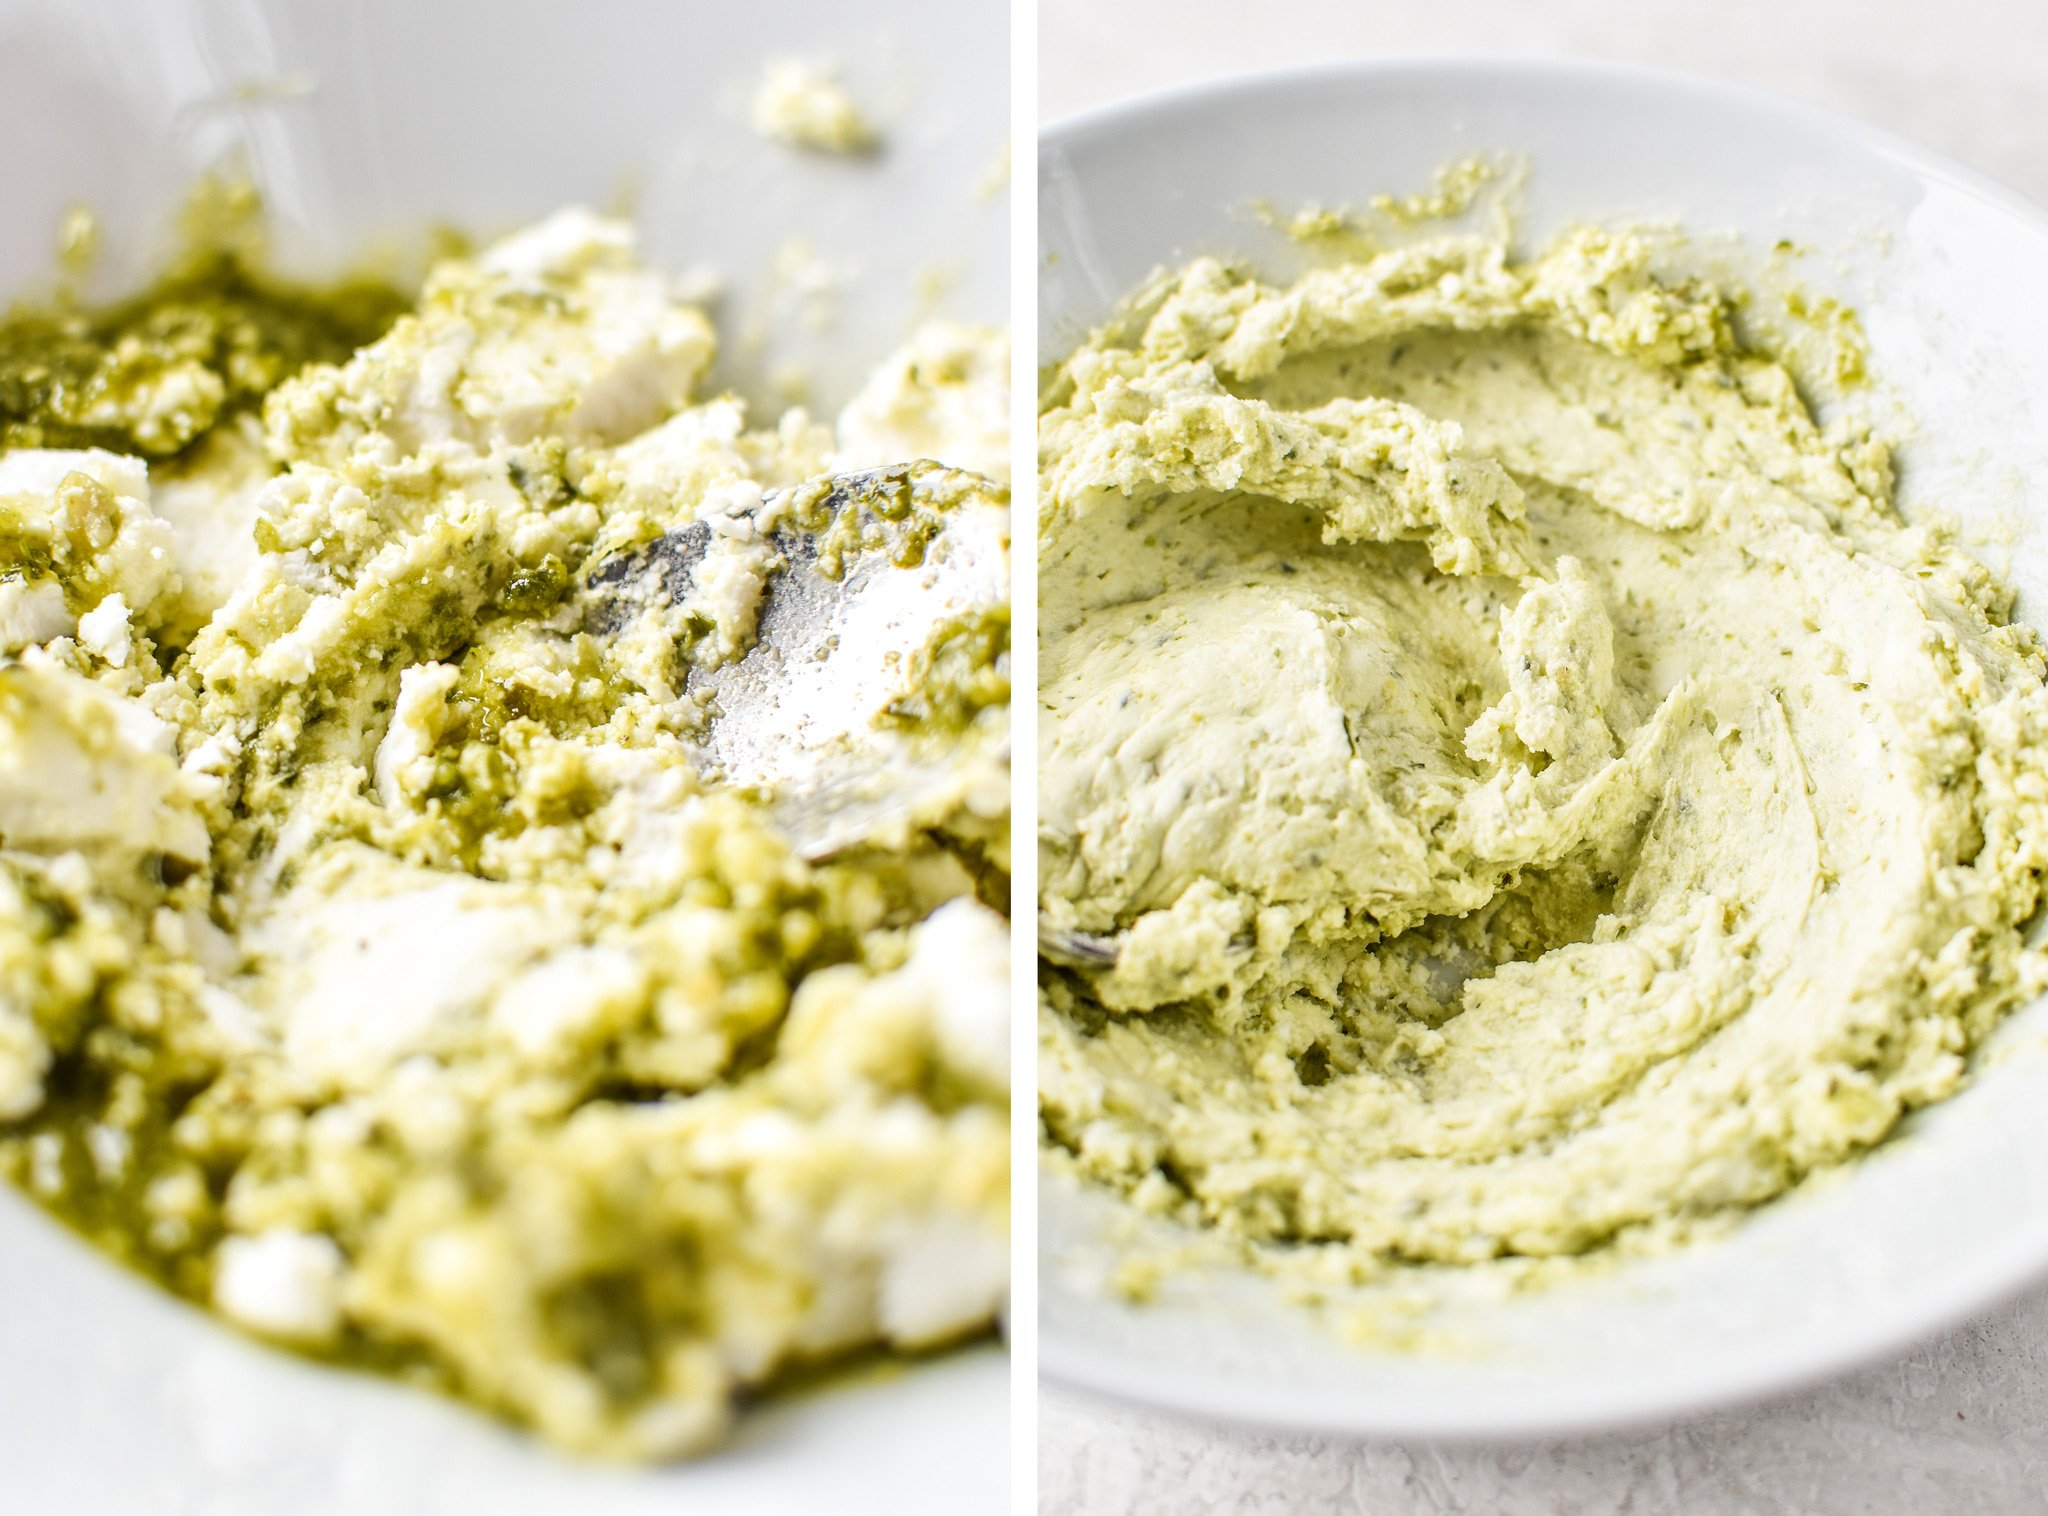 Mixing up the ingredients in the Pesto Goat Cheese Dip.